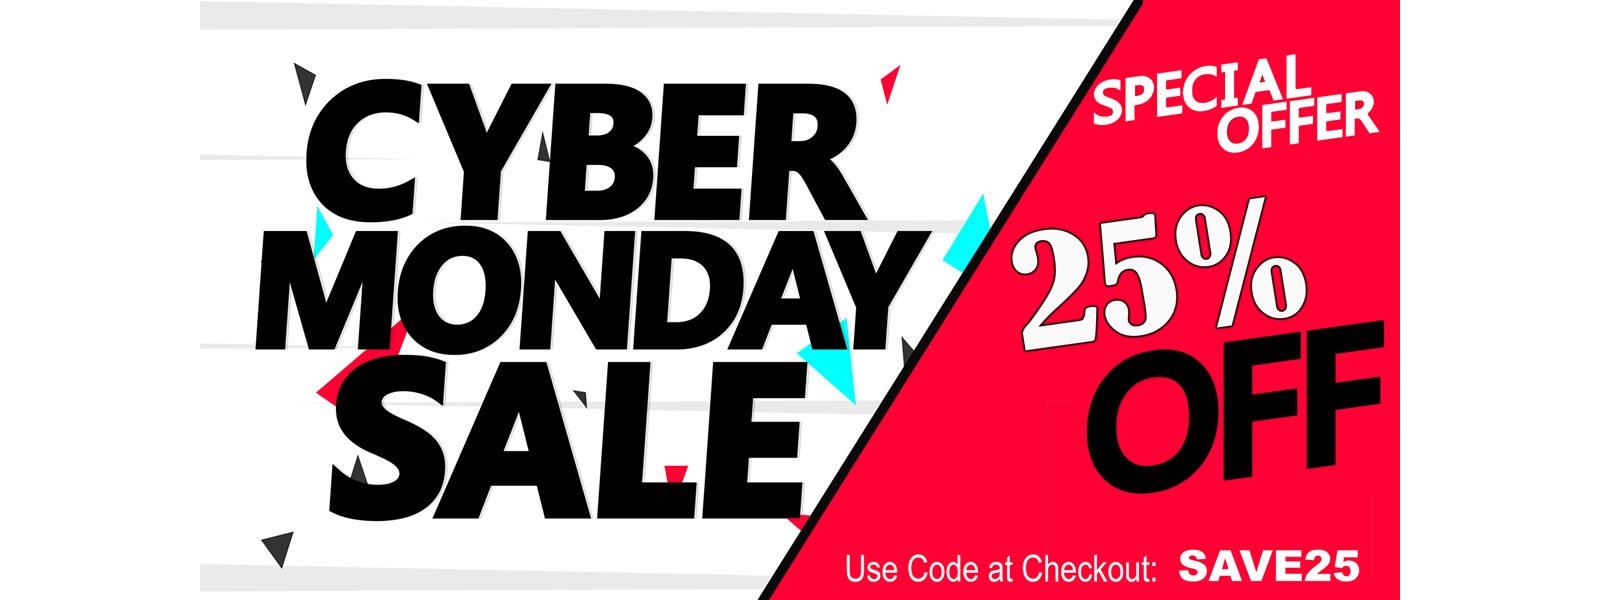 firstmate controls cyber monday sale 2019